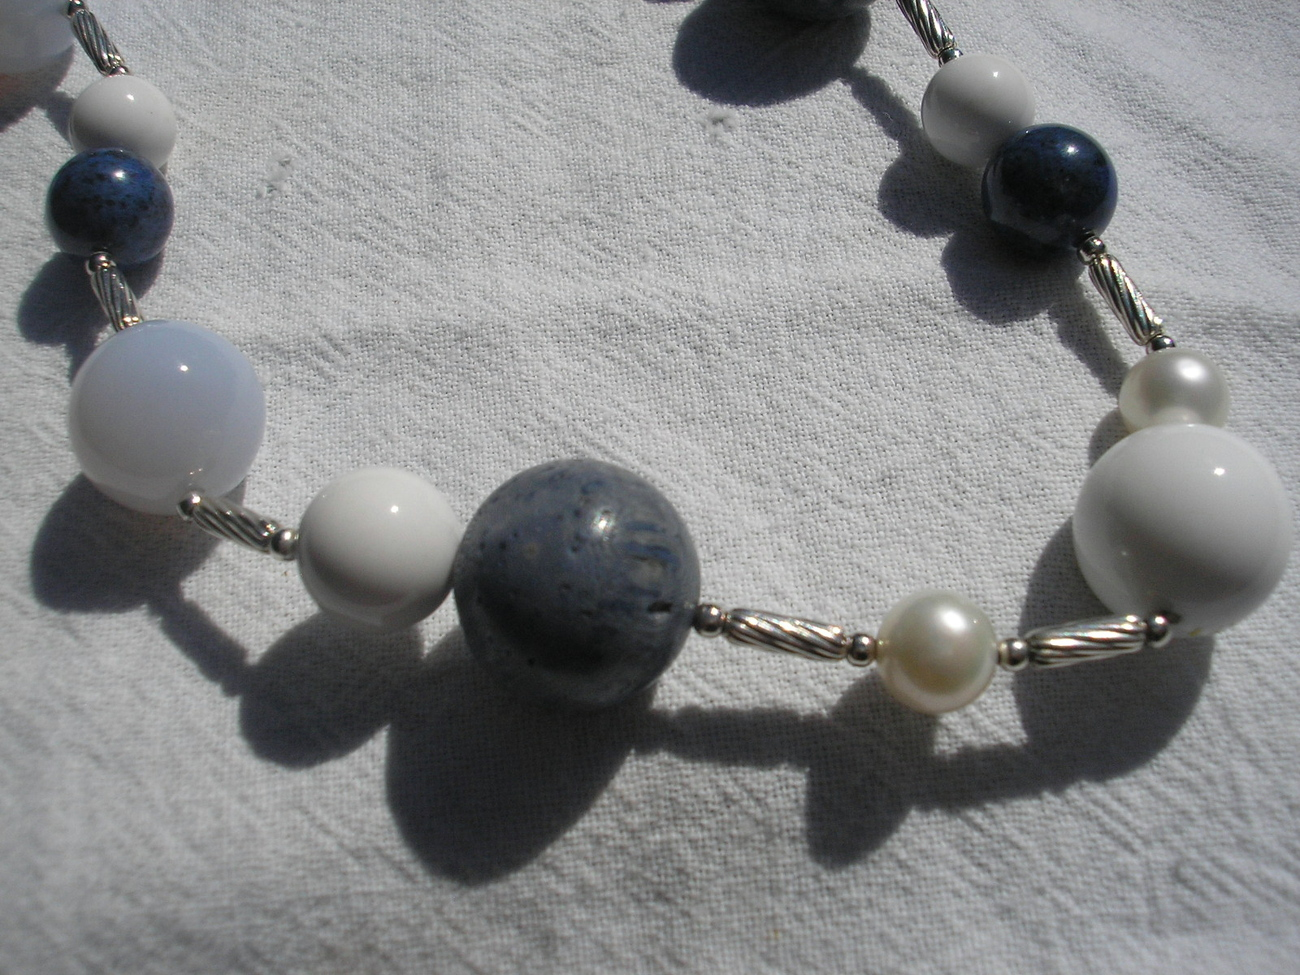 Yurman 33in White Agate, Blue Lace Agate,  Chalcedony Popcorn Bead Necklace